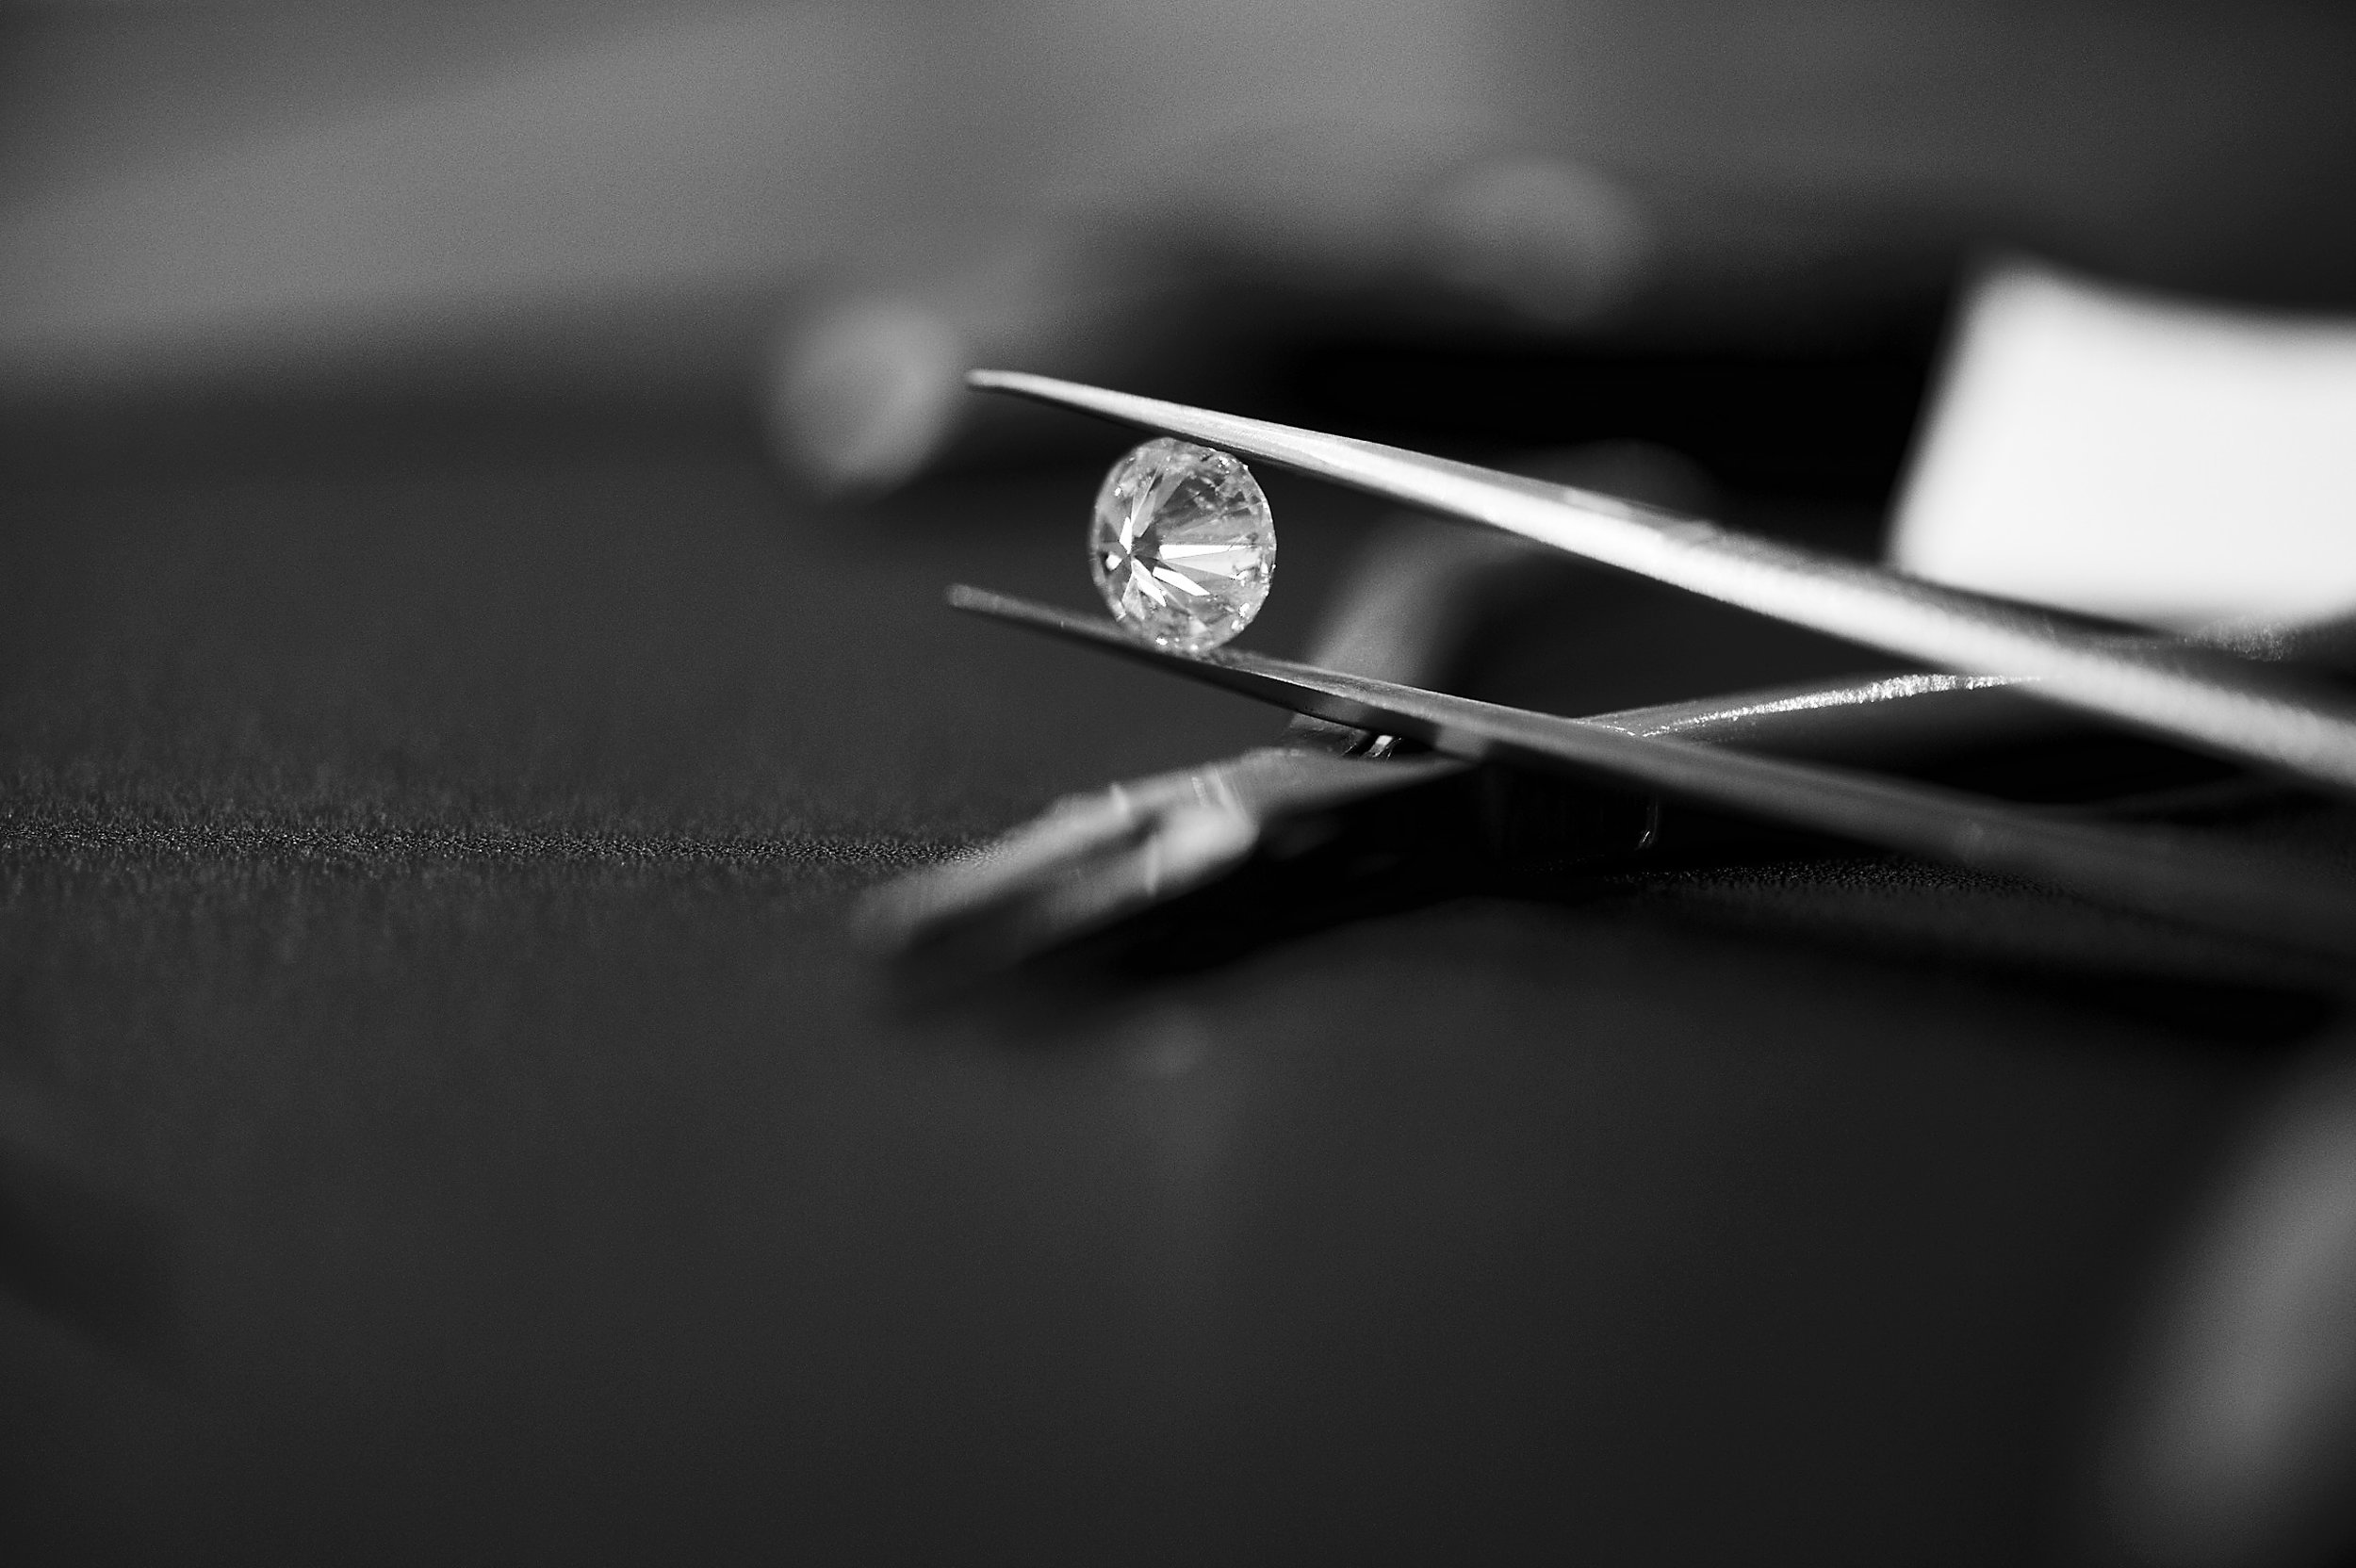 3. Choose Your Diamond - Once you've settled on your individual design, Christopher will search the world for the best diamond to suit your design and budget. You will be consulted before a final decision on any diamond is made.